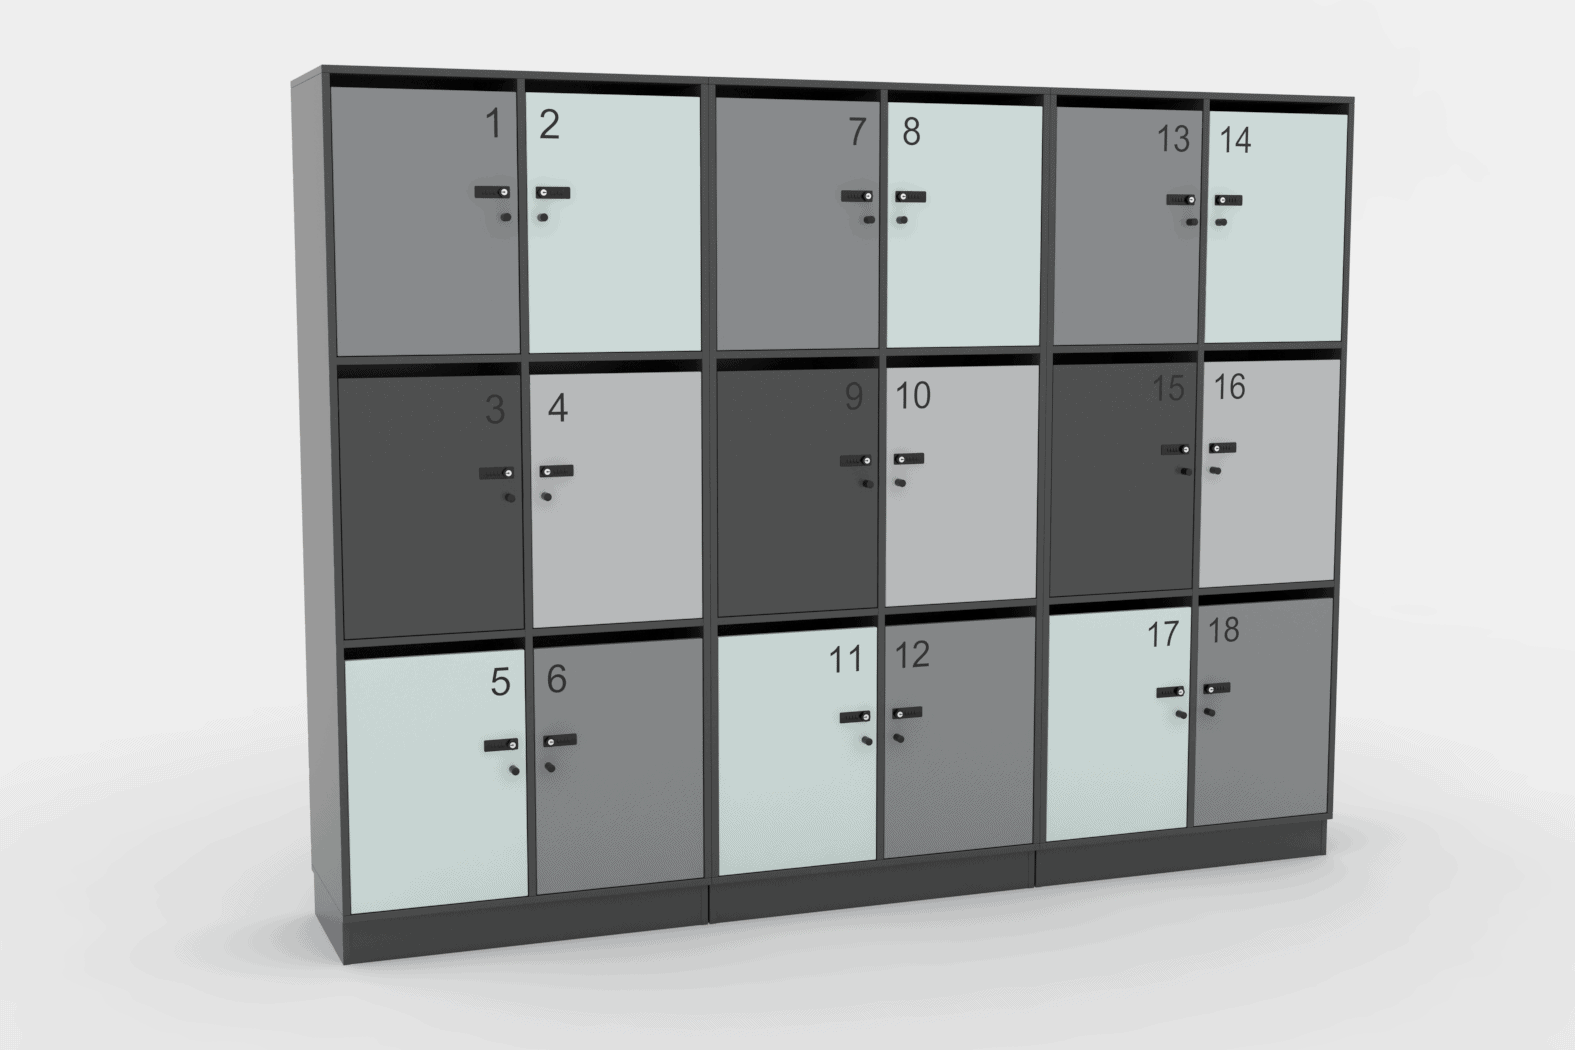 Lockers_brevindkast_04